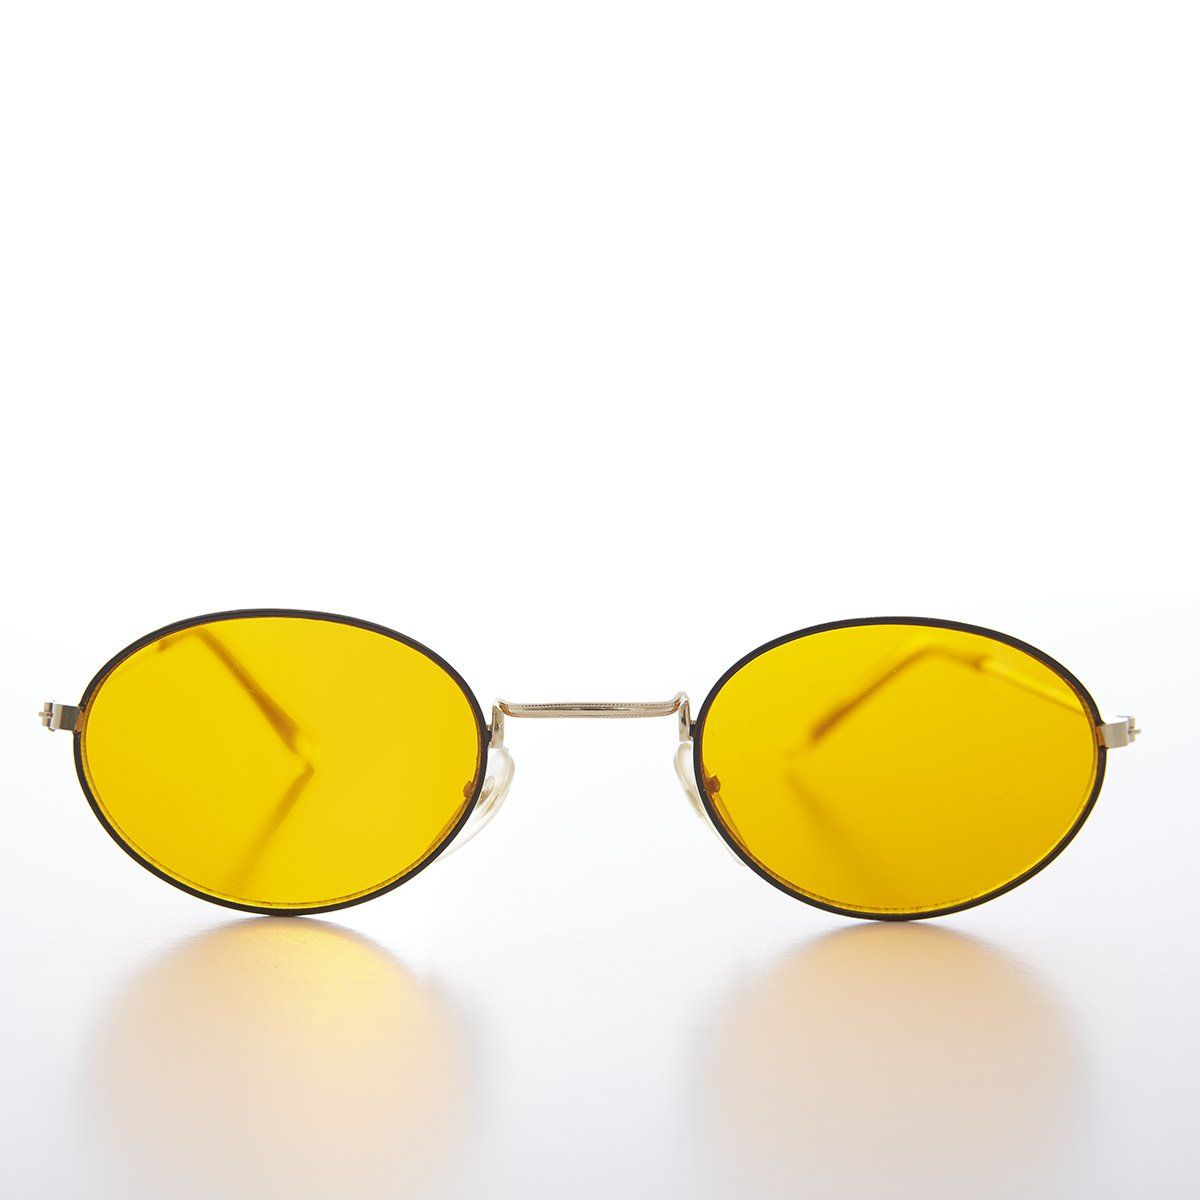 0859b16dbd4 Oval Yellow Lens Blue Blocker Vintage Sunglass - Mellow in 2019 ...